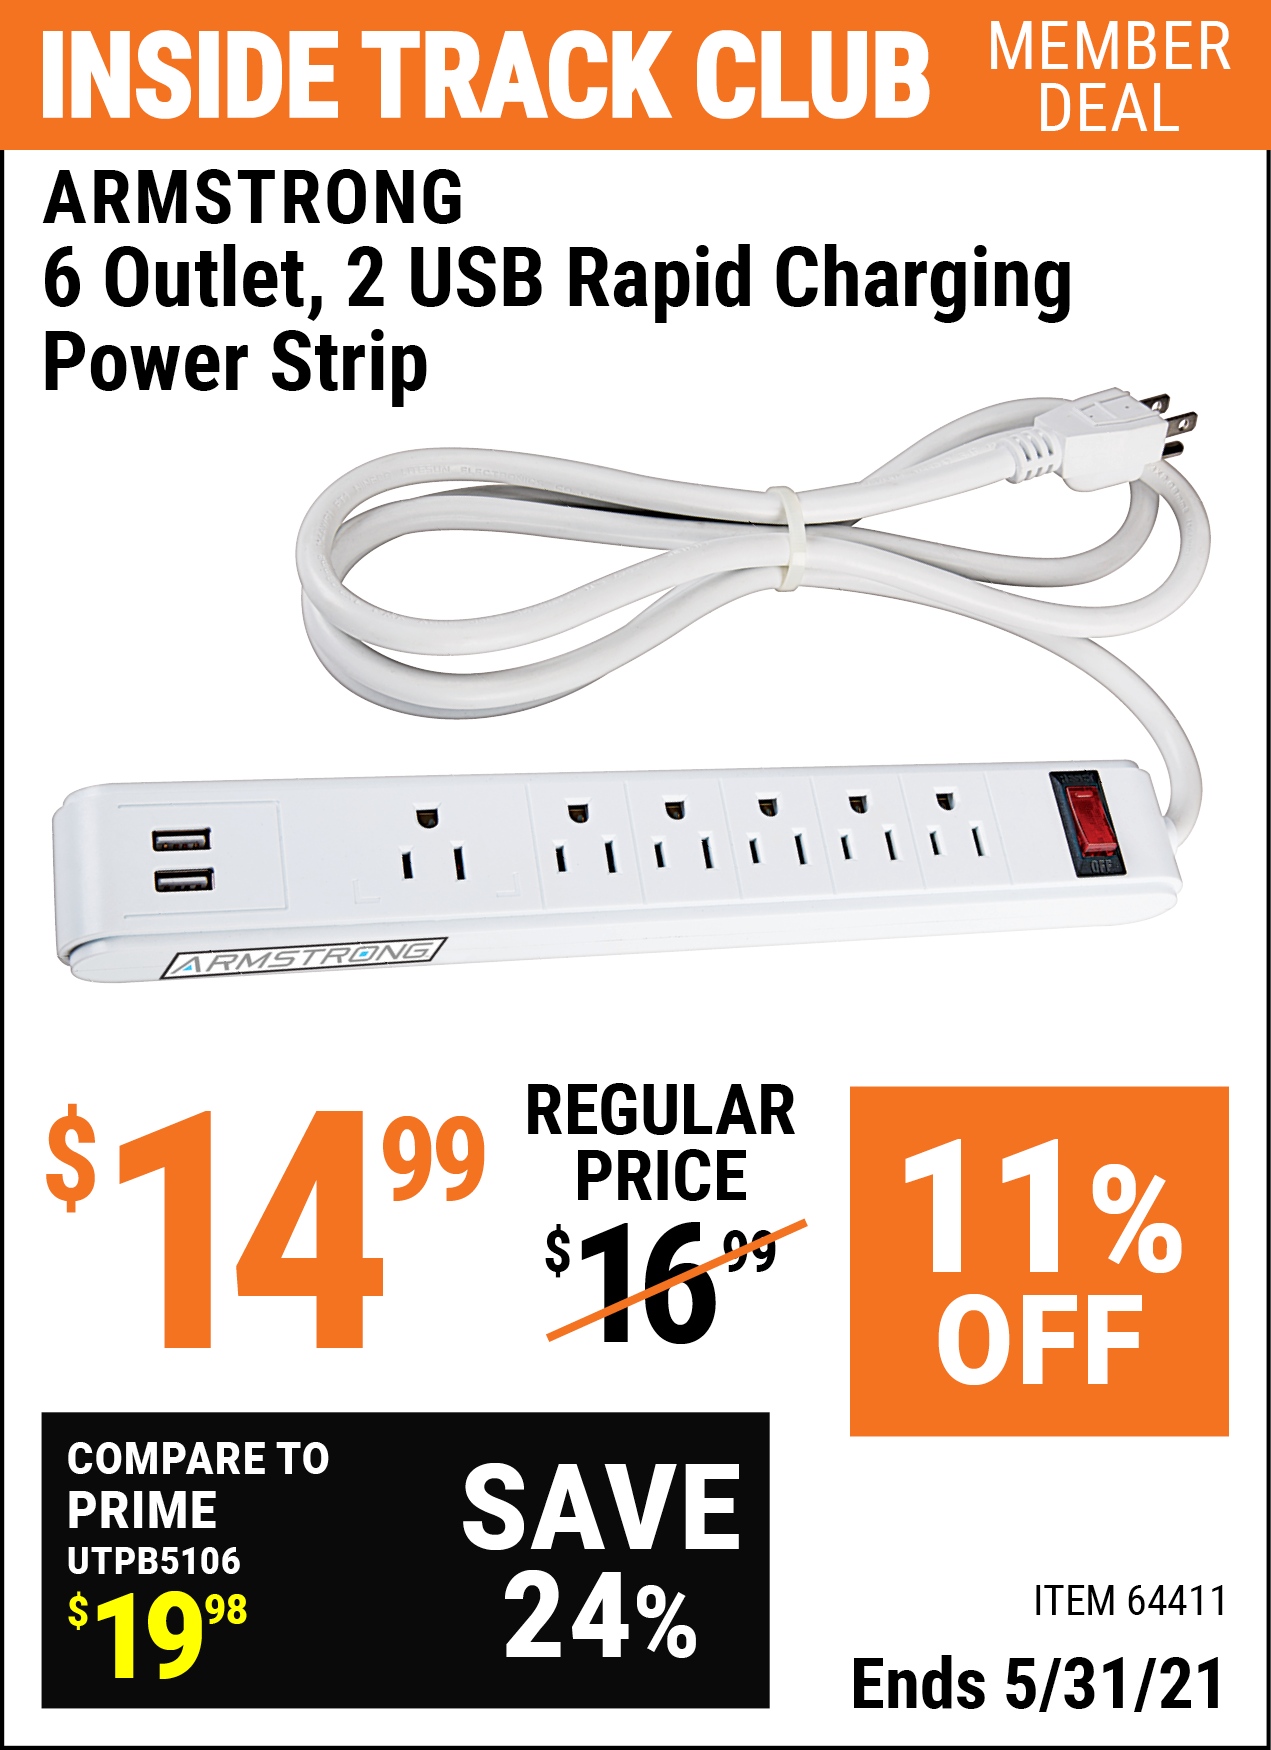 Inside Track Club members can buy the ARMSTRONG 6 Outlet 2 USB Rapid Charging Power Strip (Item 64411) for $14.99, valid through 5/31/2021.